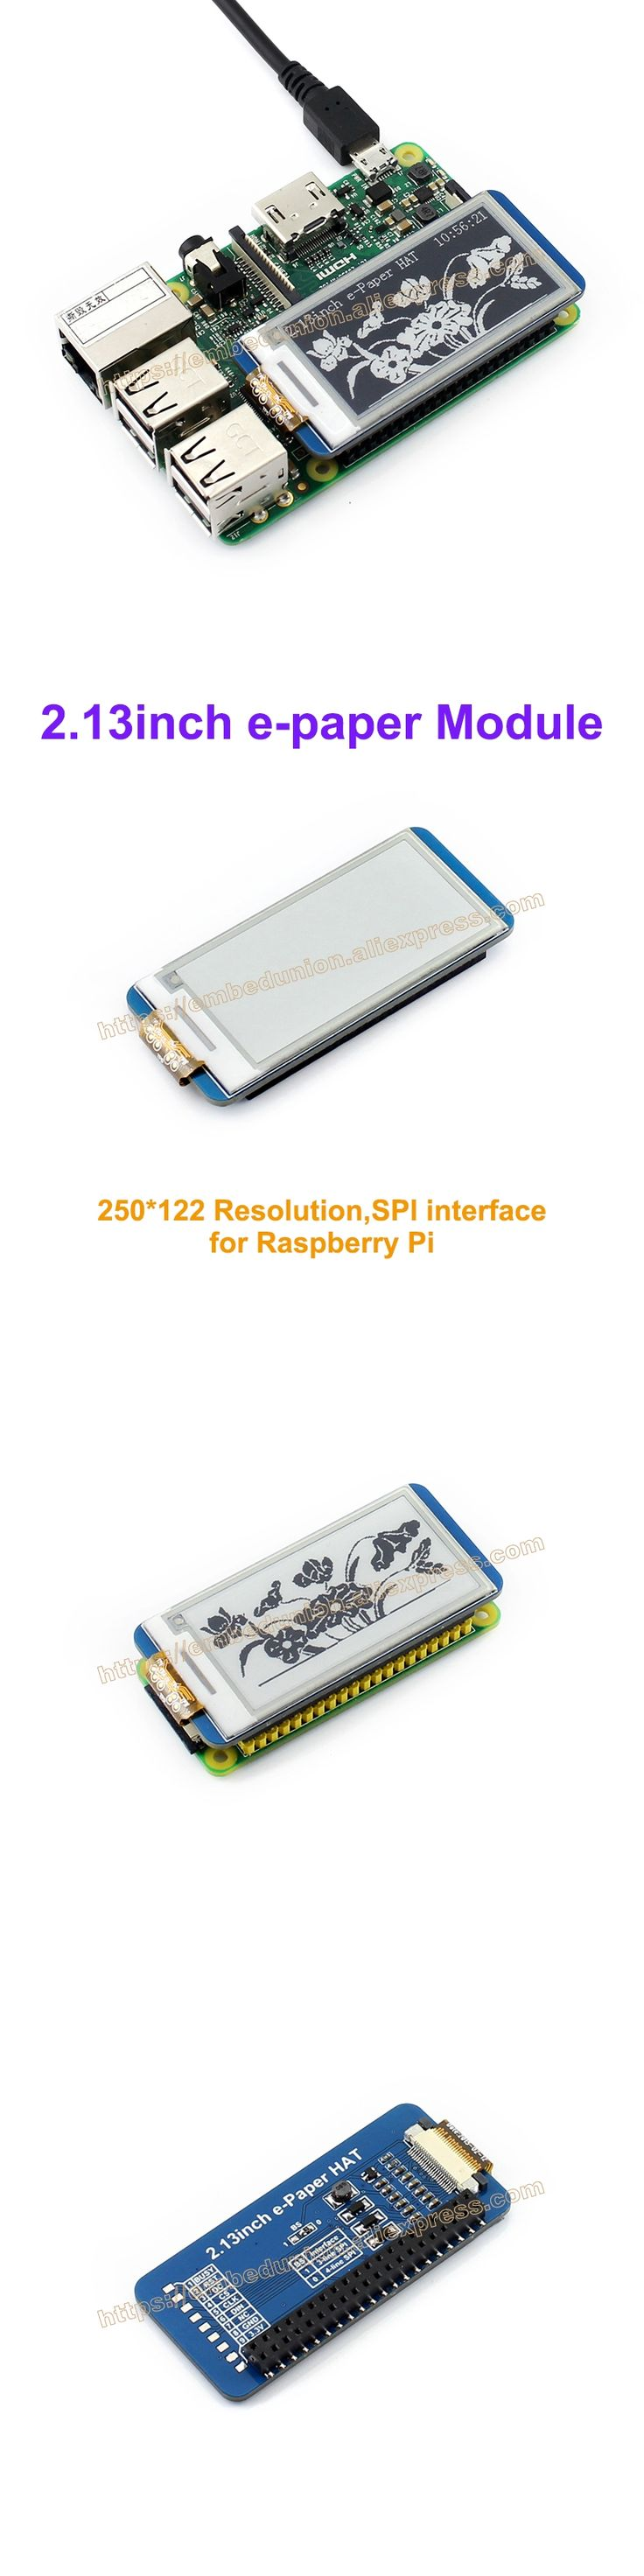 2.13inch e-Paper HAT 250x122 2.13inch E-Ink Drive Demo Board display for Raspberry Pi Display color: black,white,SPI Interface